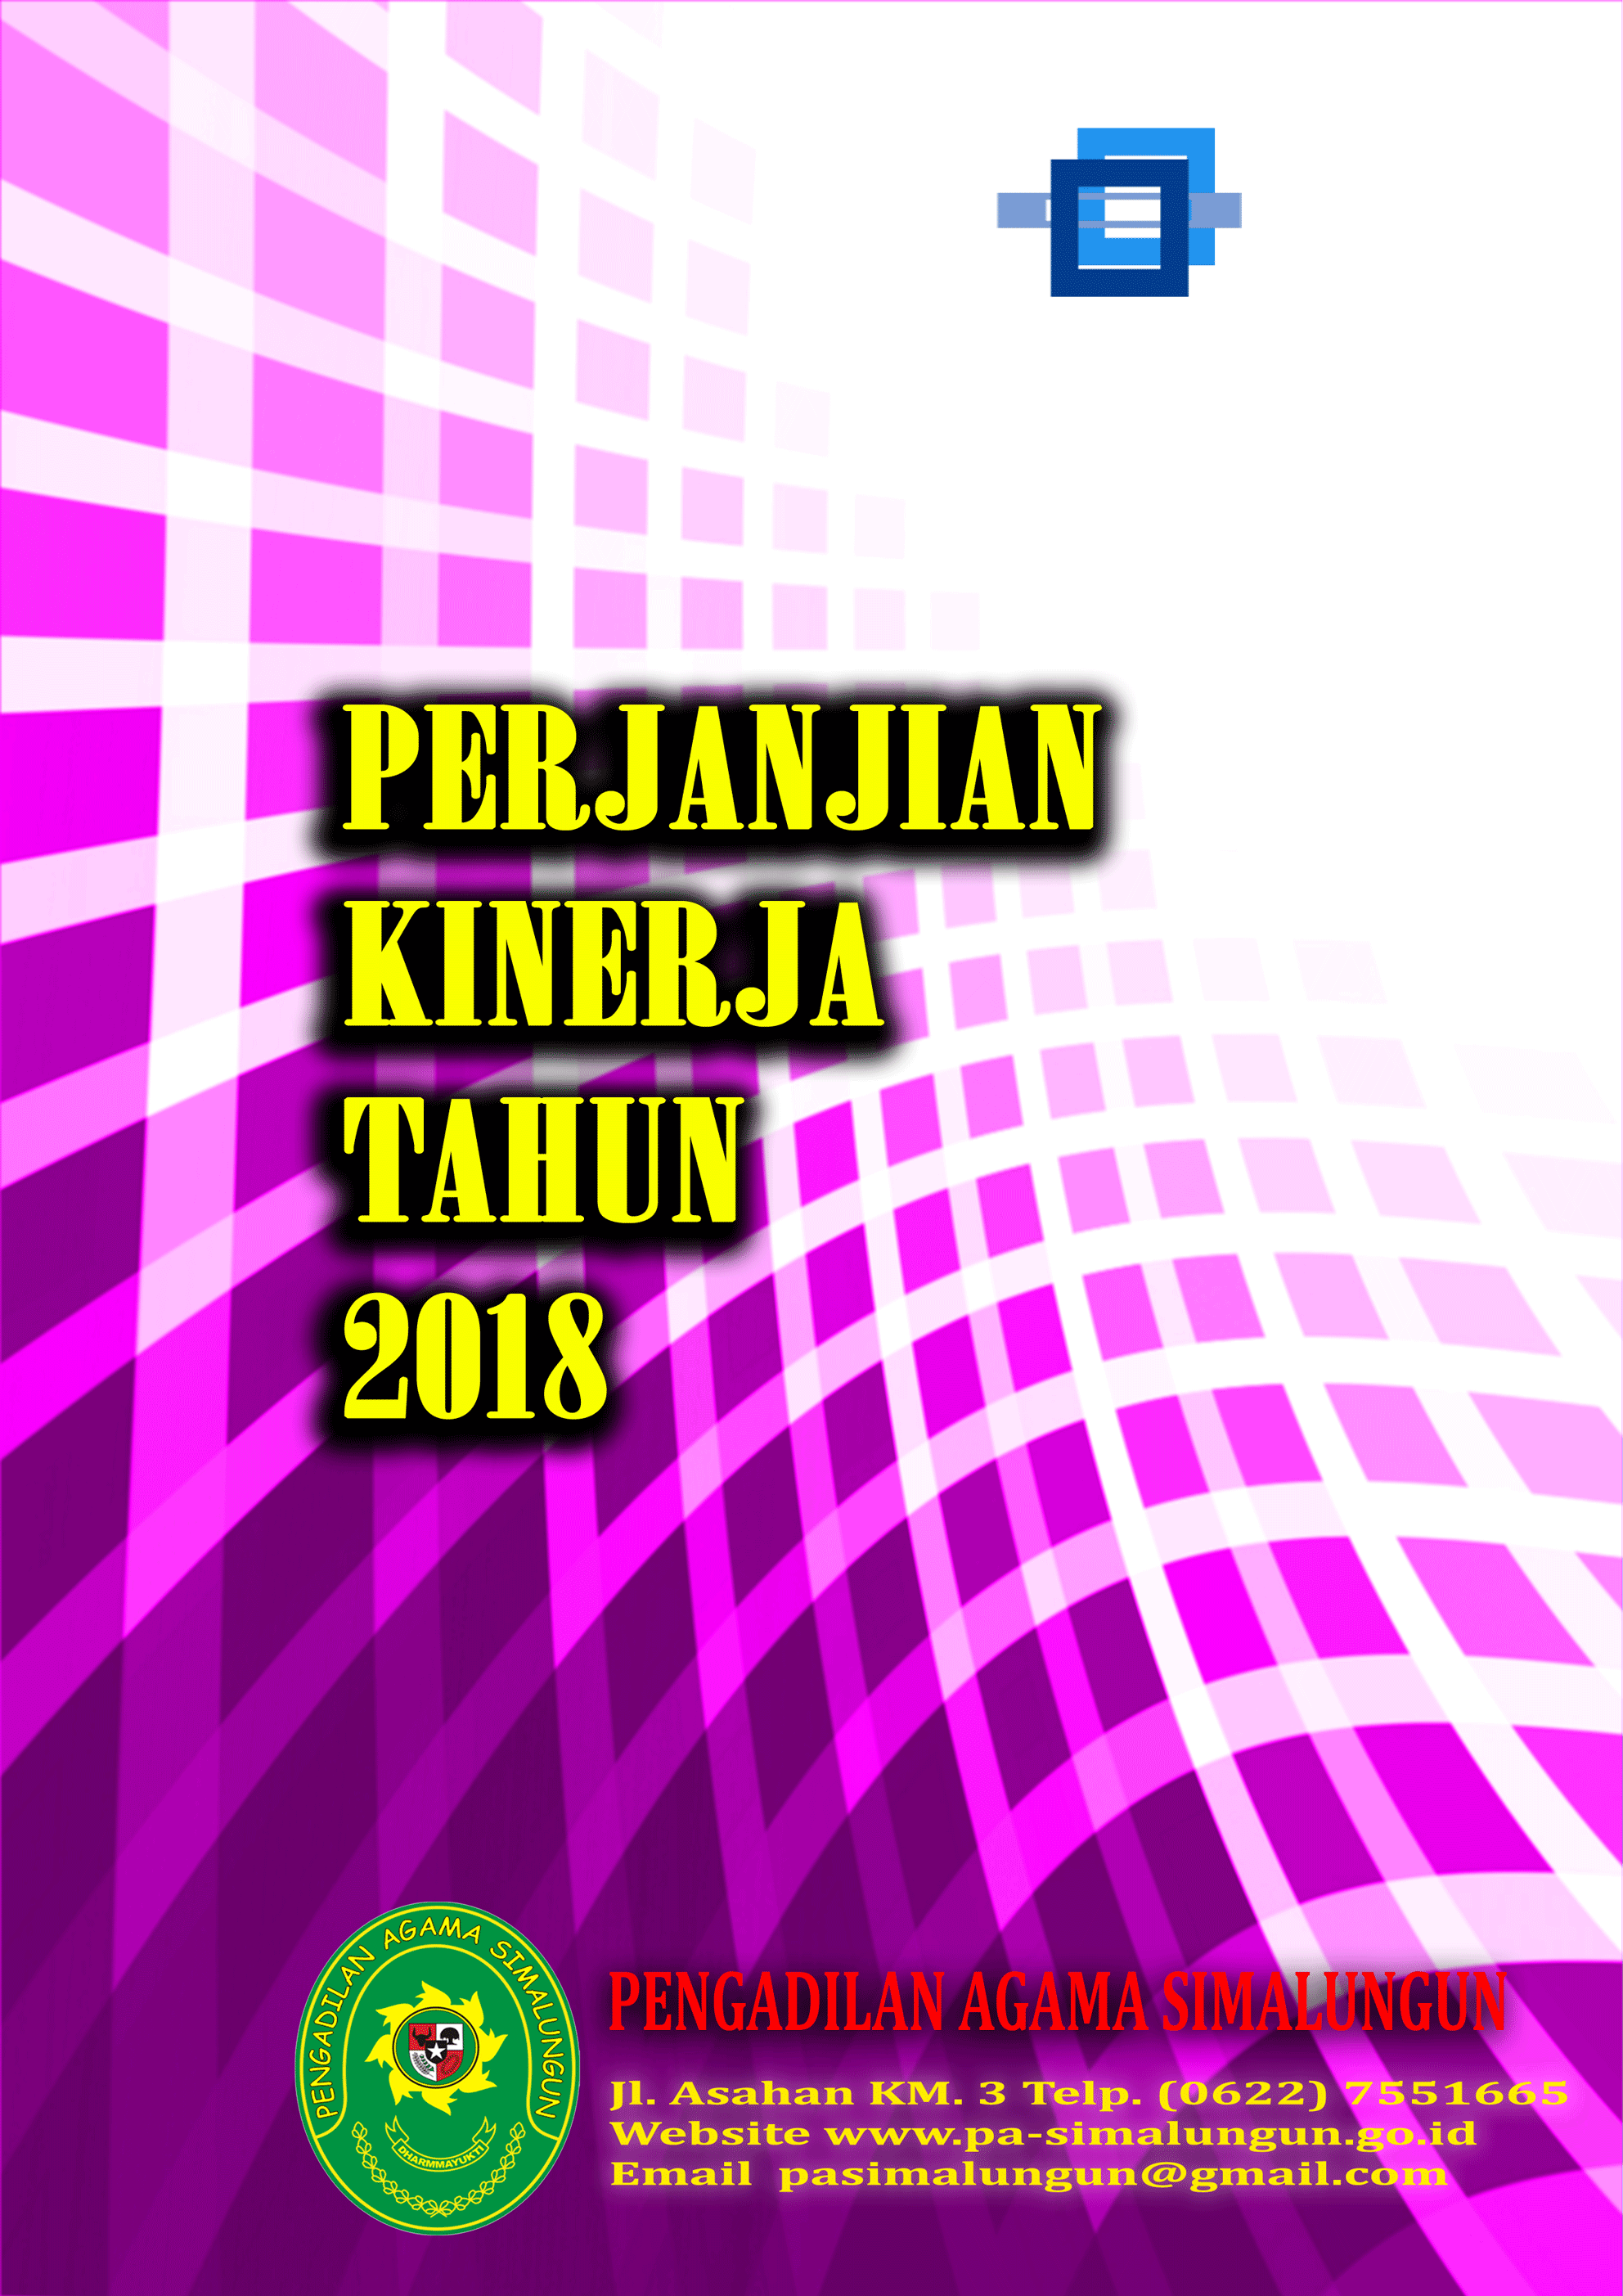 COVER PK 2018